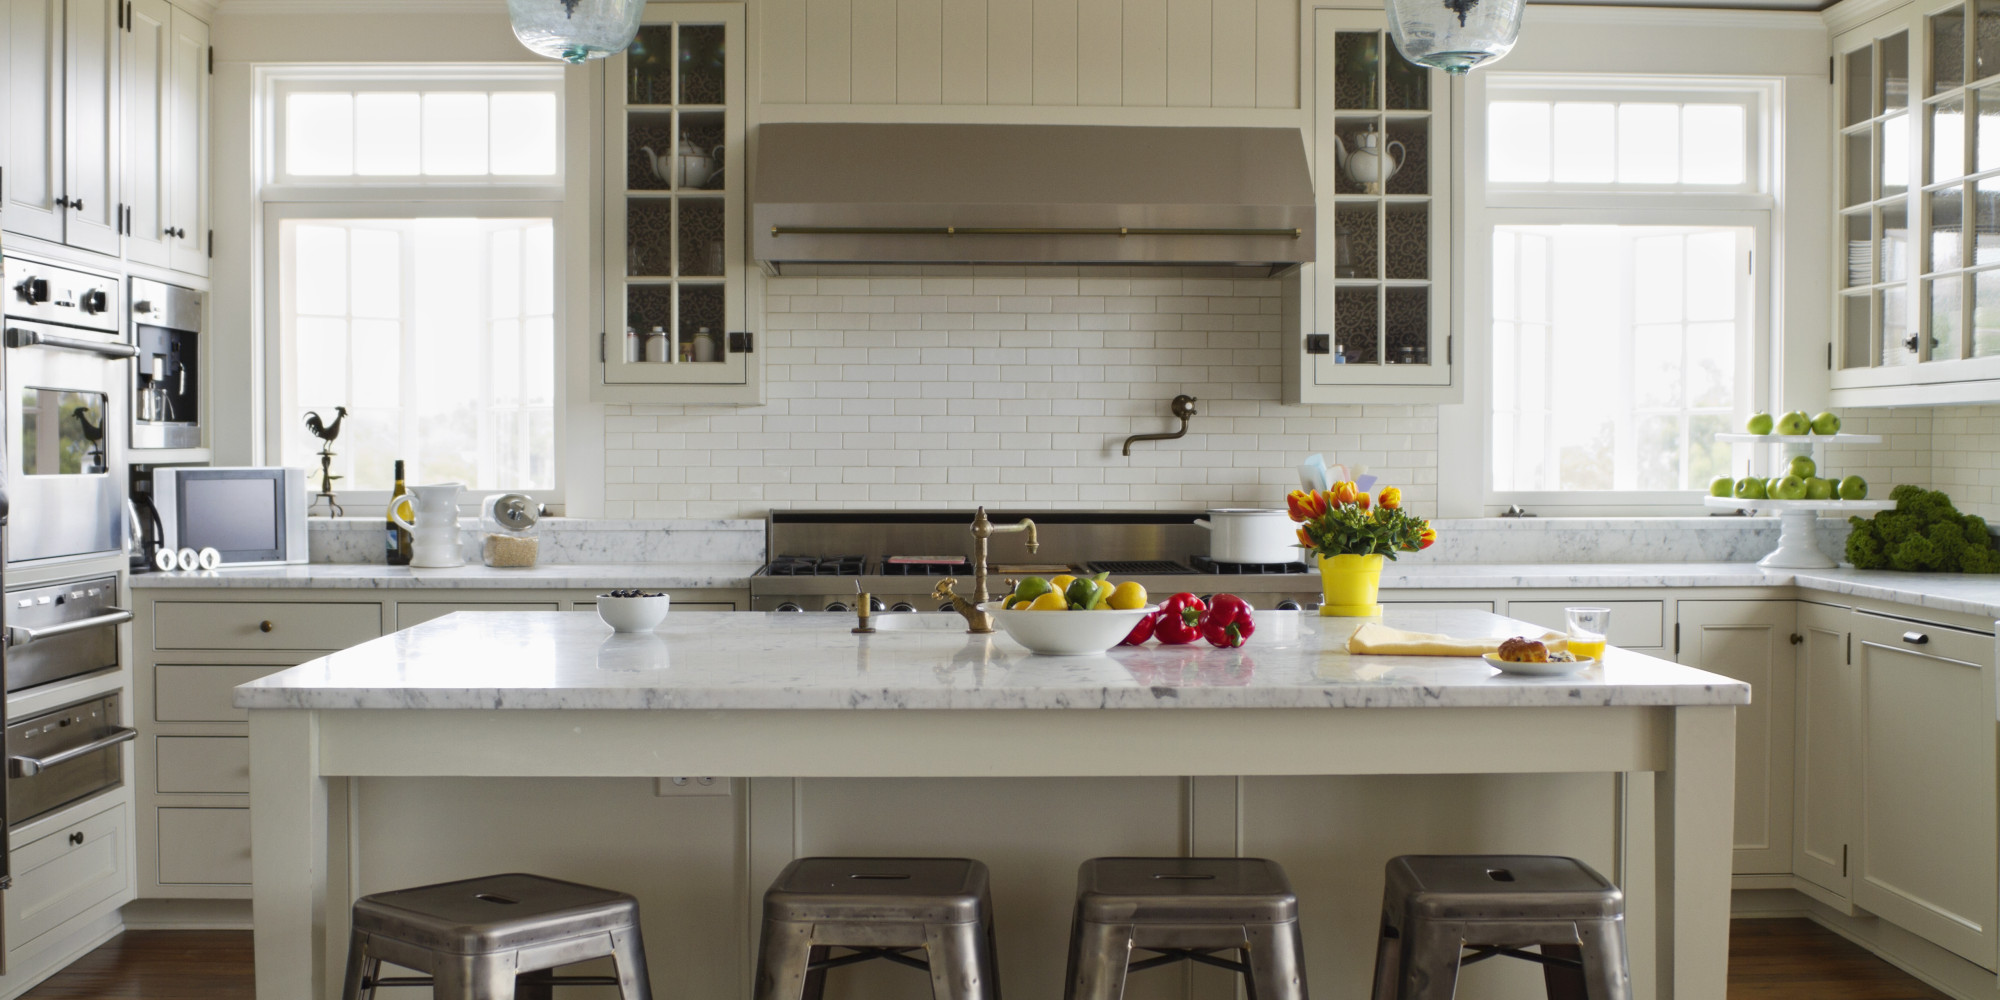 The 3 Biggest Kitchen Trends Of 2014 Might Surprise You (PHOTOS)  The